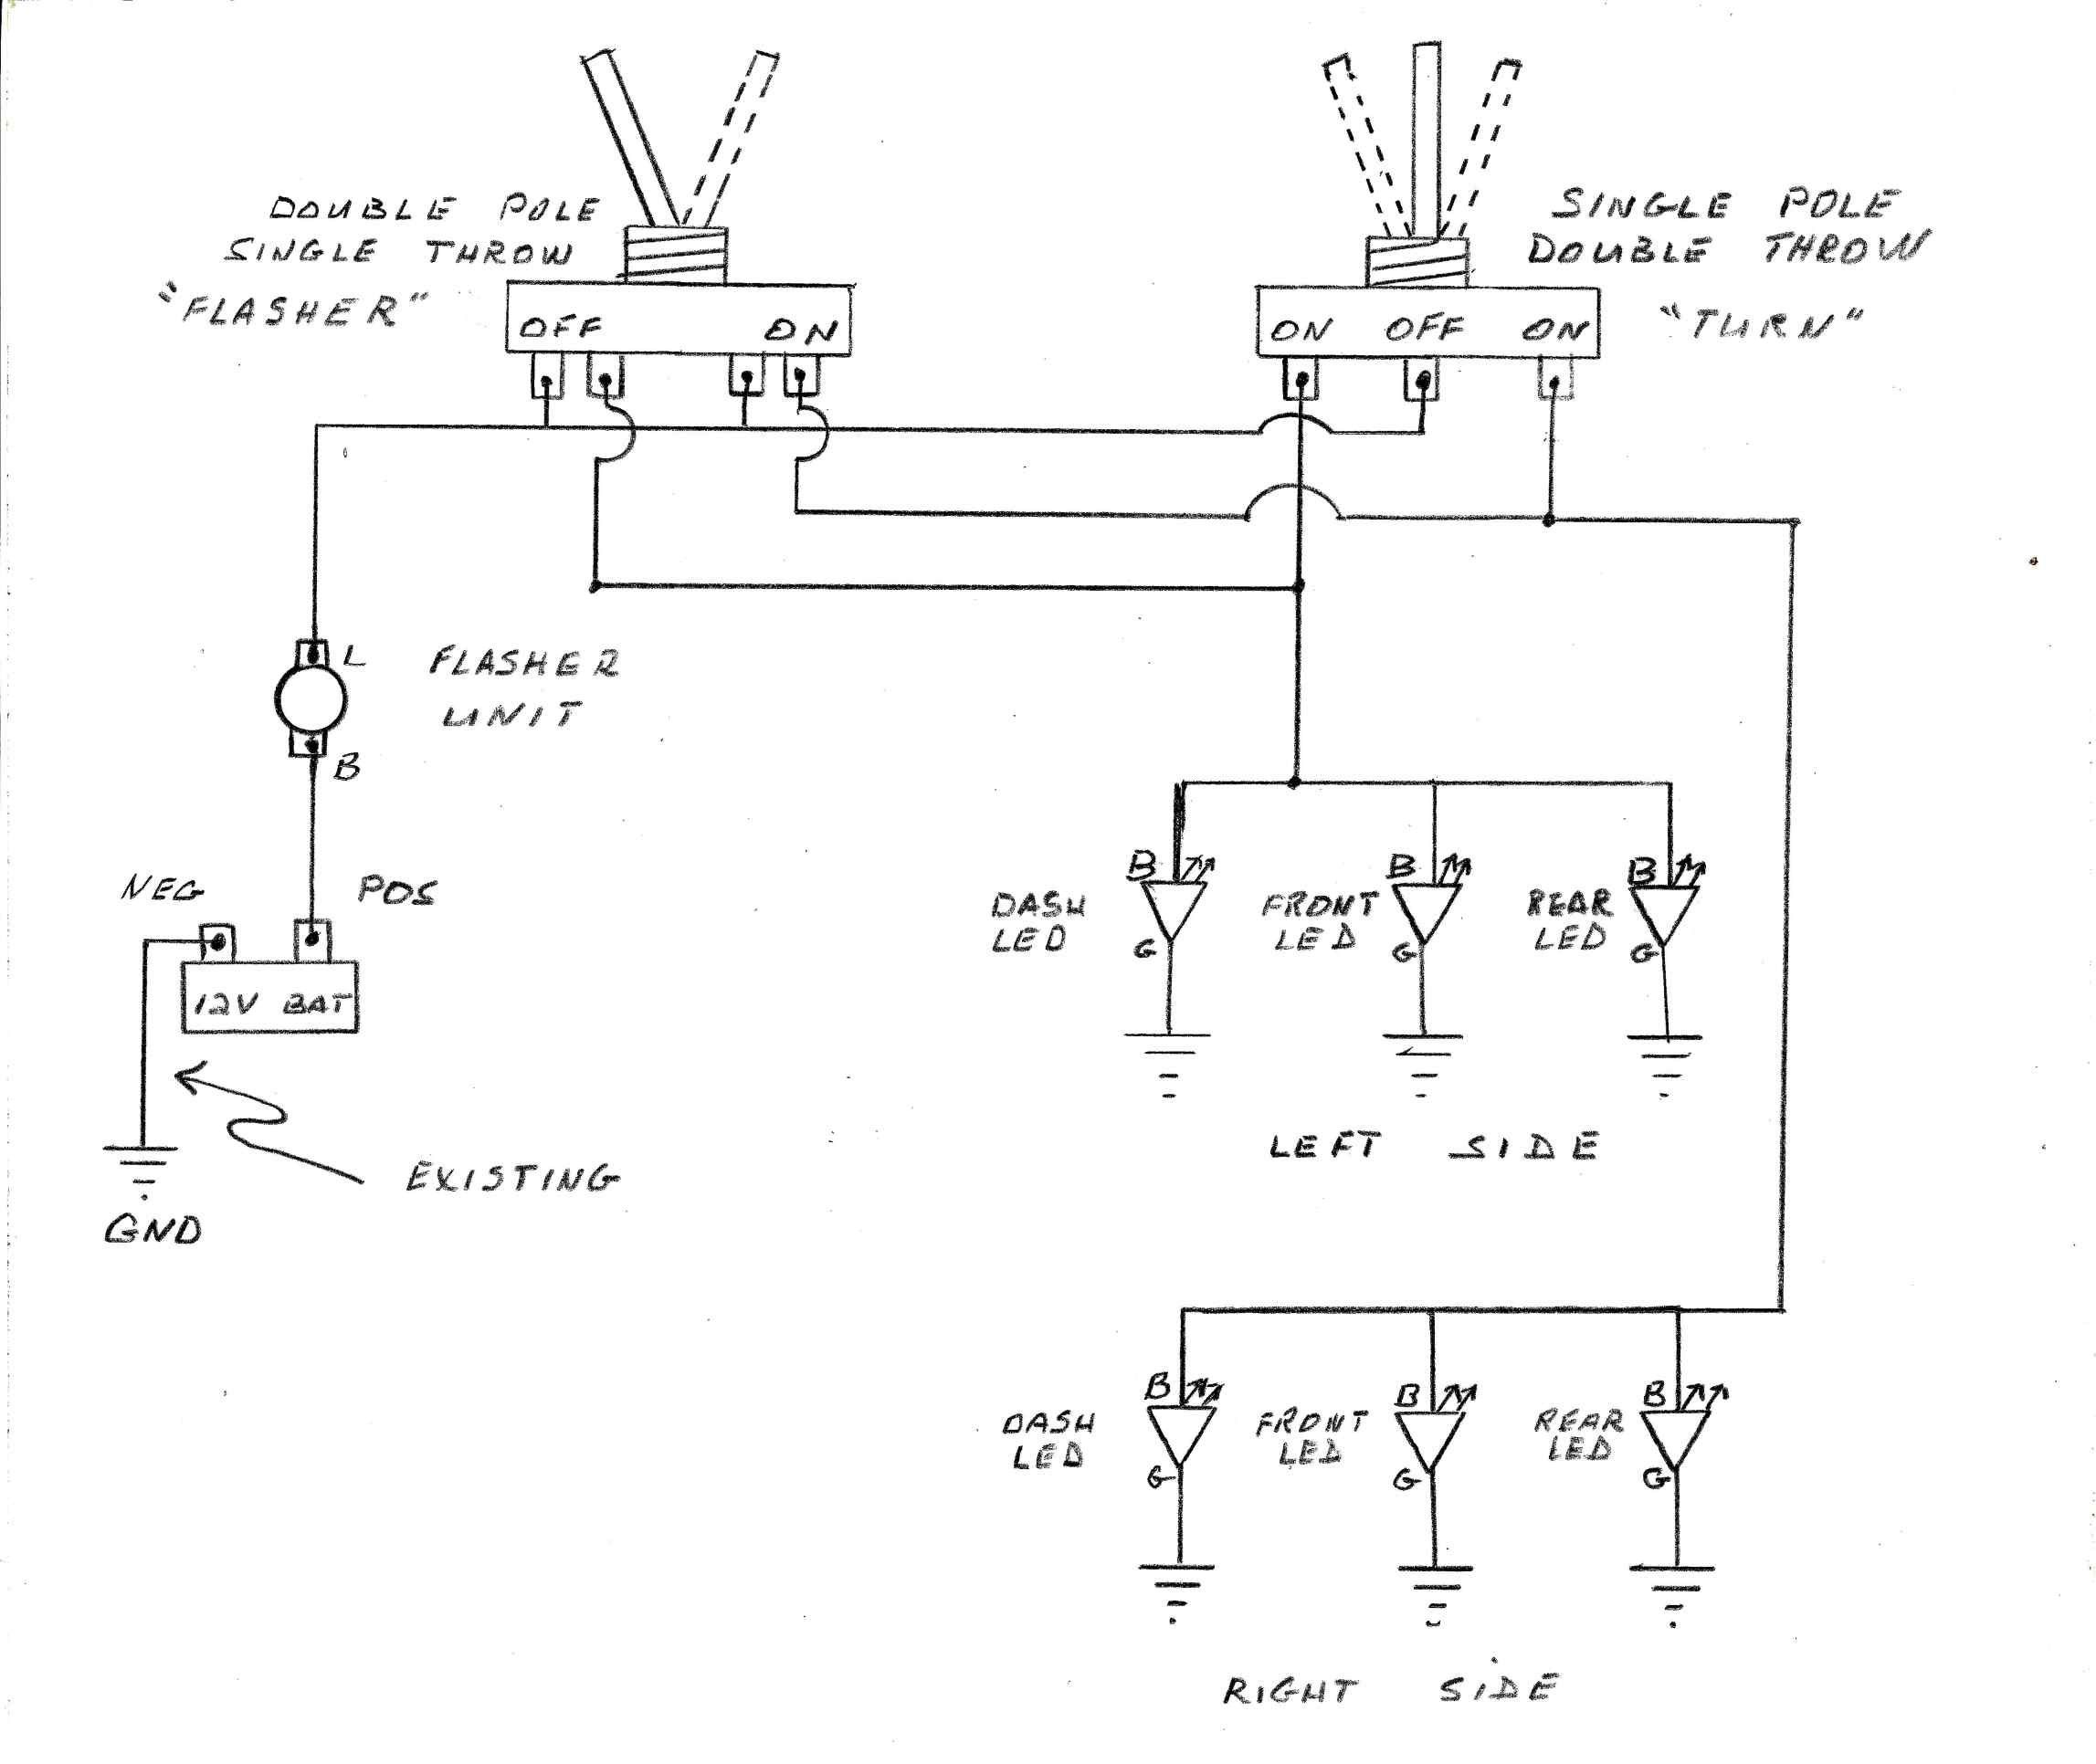 Awesome Wiring Diagram For Motorcycle Hazard Lights Diagrams Digramssample Diagramimages Wiringdiagramsample Wiringdiagram Check More At Https Nosto Mesin